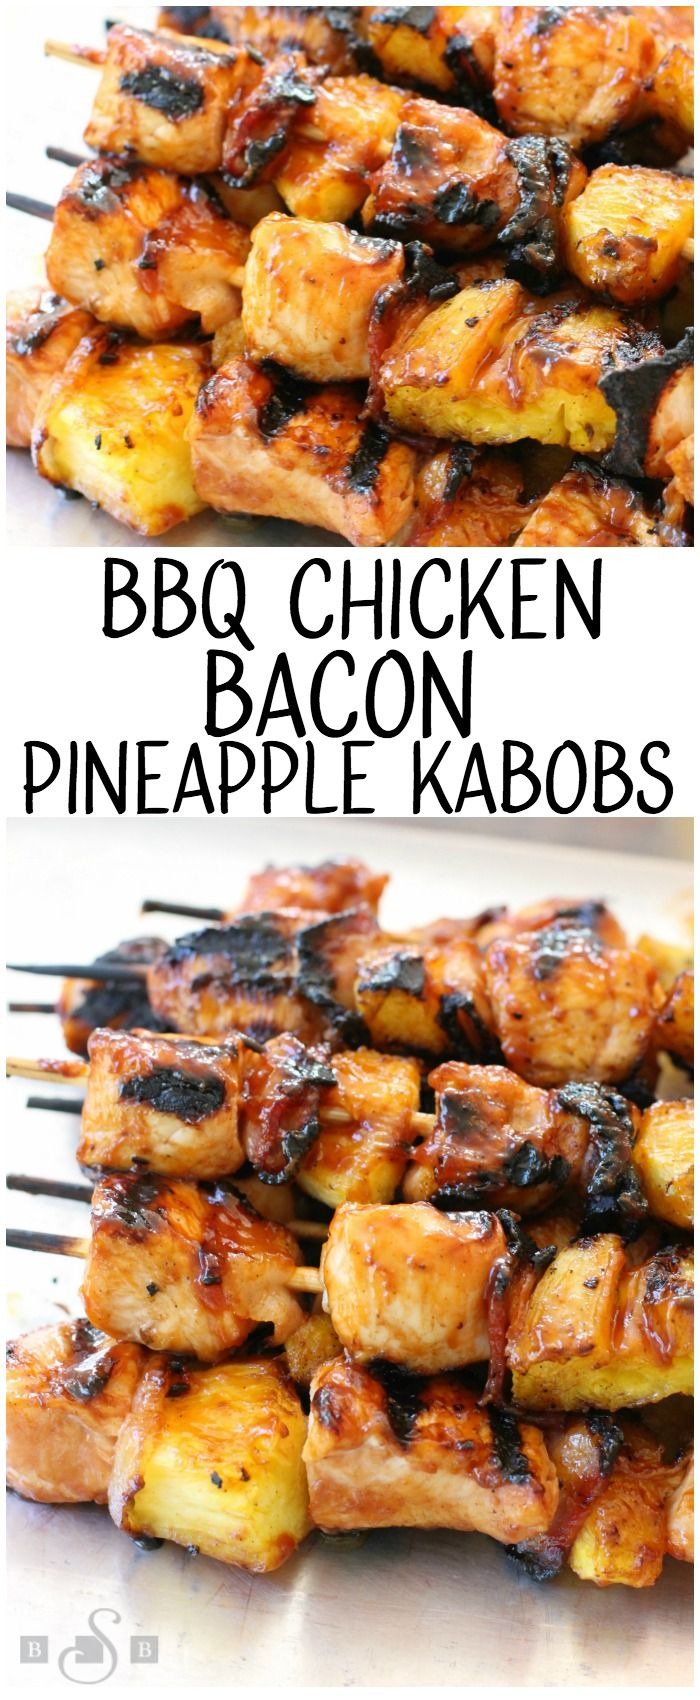 Grilling Ideas That Go Way Beyond Chicken and Skewers